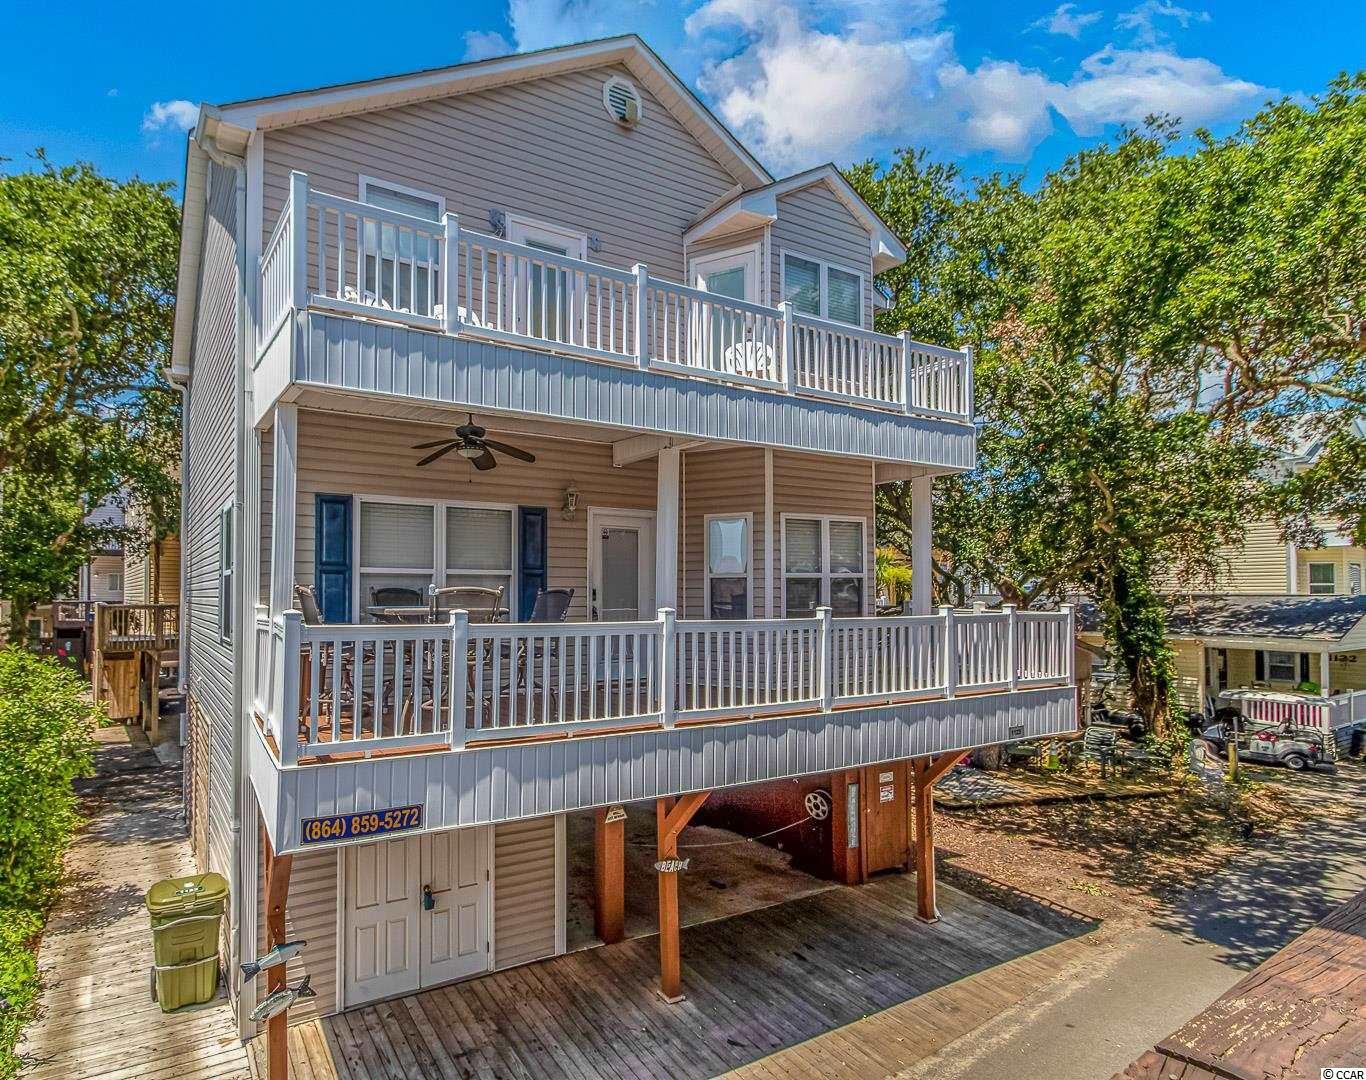 Schedule your showing for this Beautiful 5 bedroom and 3 bath home. Enjoy the double decks. Ocean Lakes has almost one mile of beach front positioned on 310 acres. They have 24 hour security and many amenities such as indoor and outdoor pools, water park and splash zone for children, lazy river and slides, basketball courts, volleyball and much more. All measurements and square footage are approximate and not guaranteed. Buyer is responsible for verification.